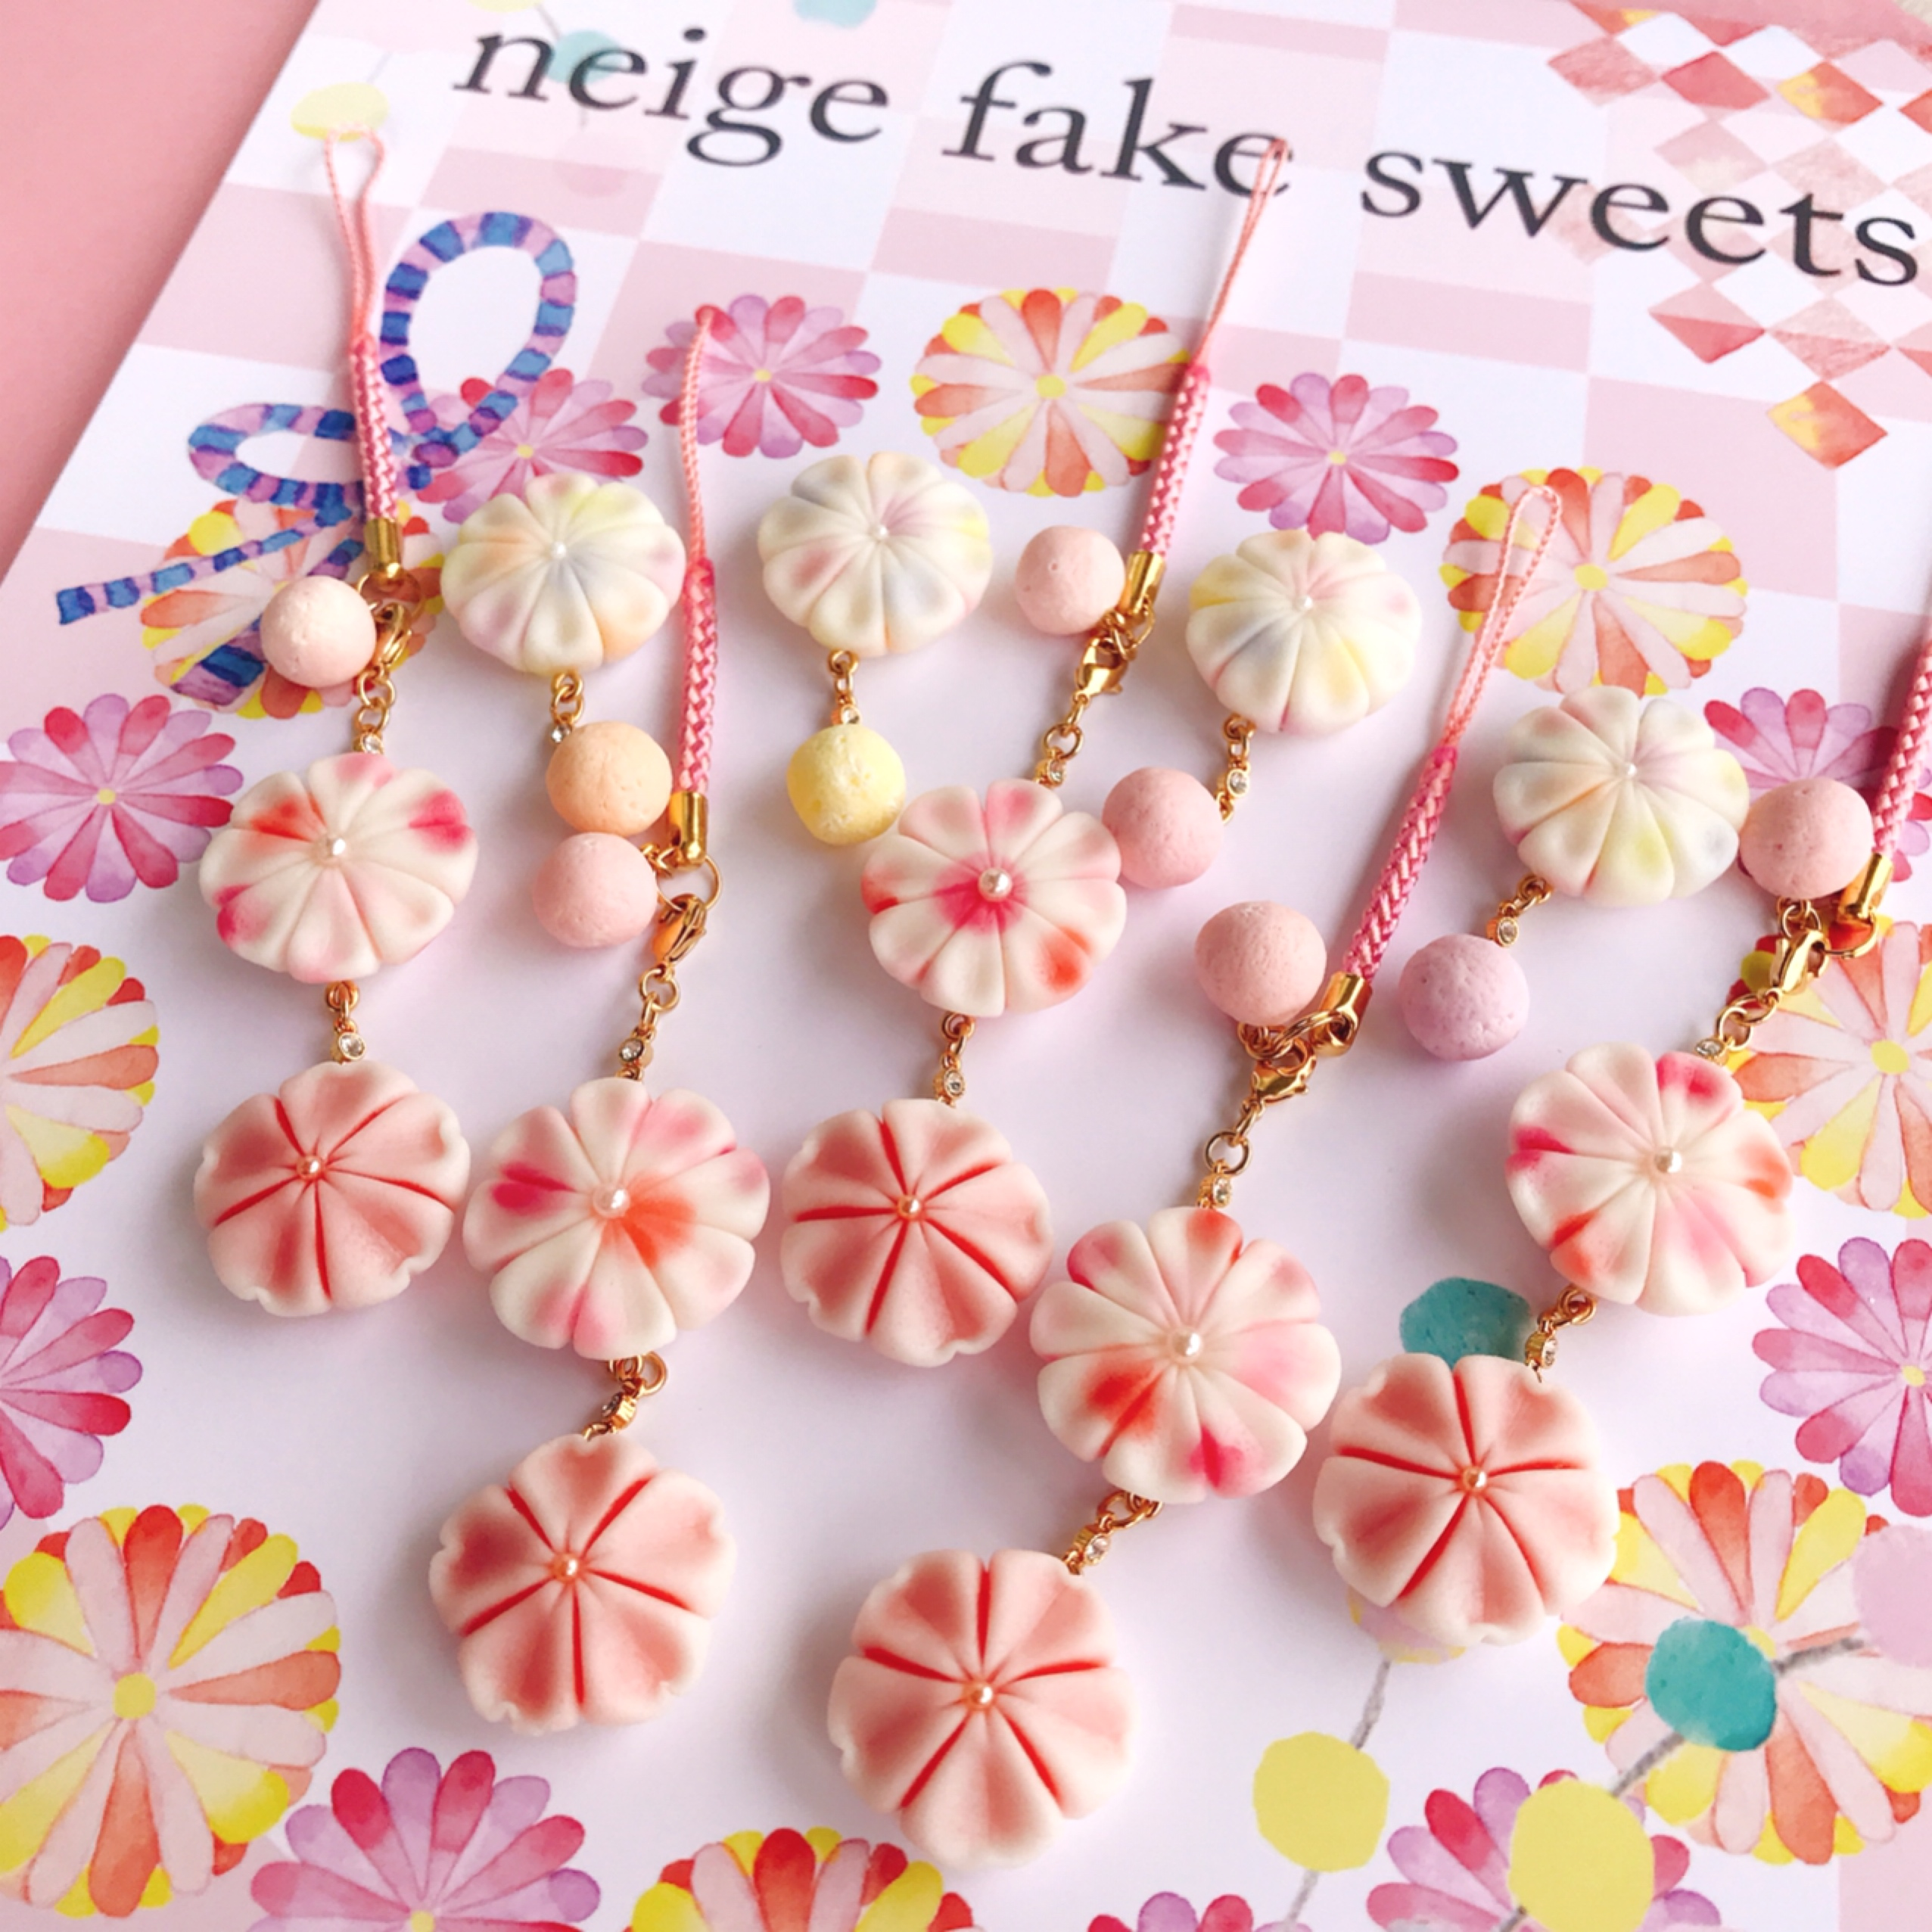 neige fake sweets